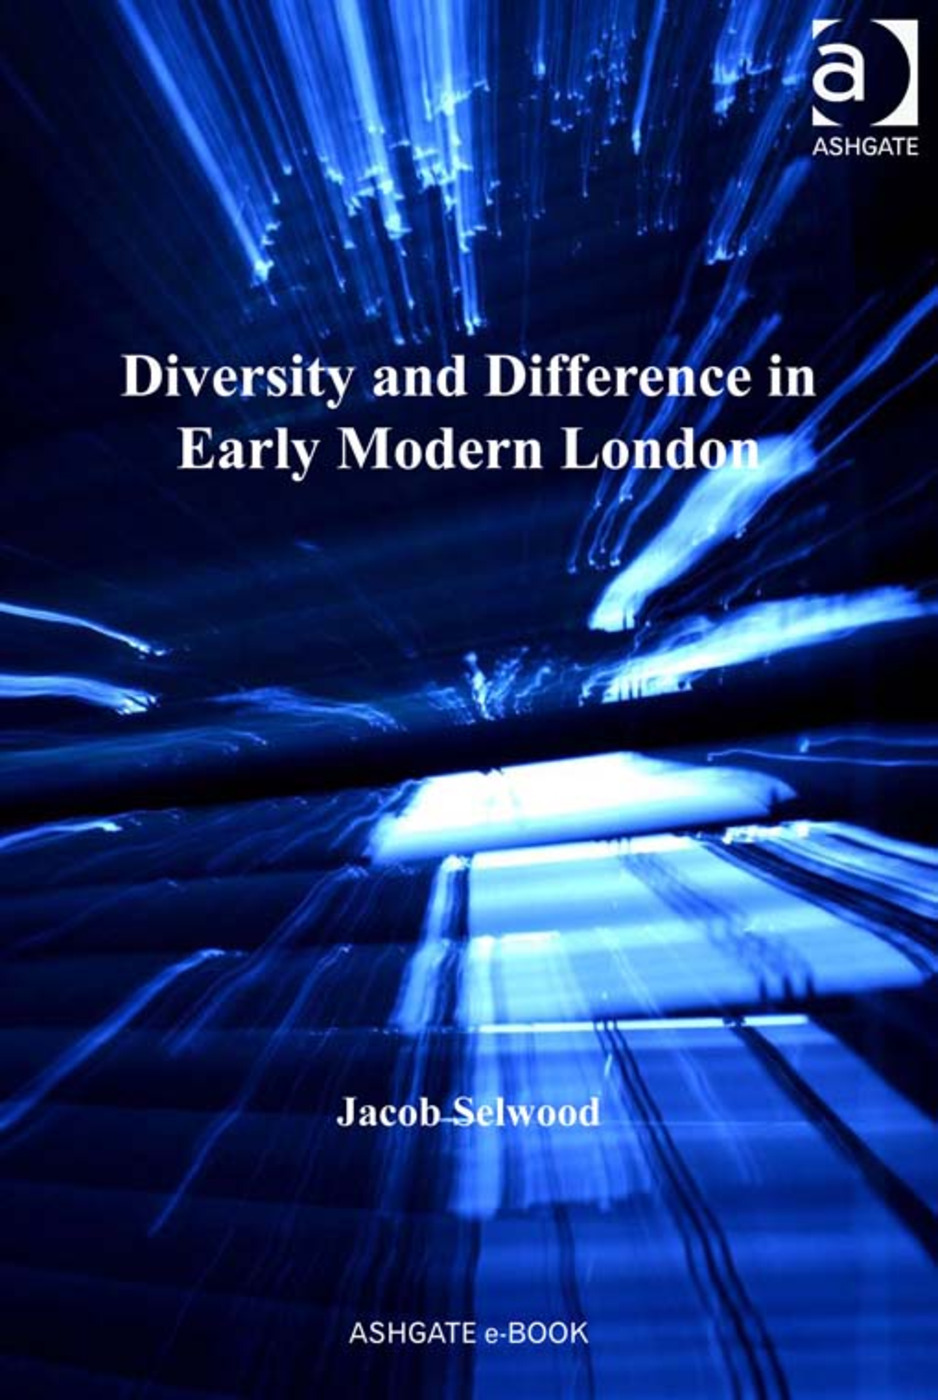 Diversity and Difference in Early Modern London